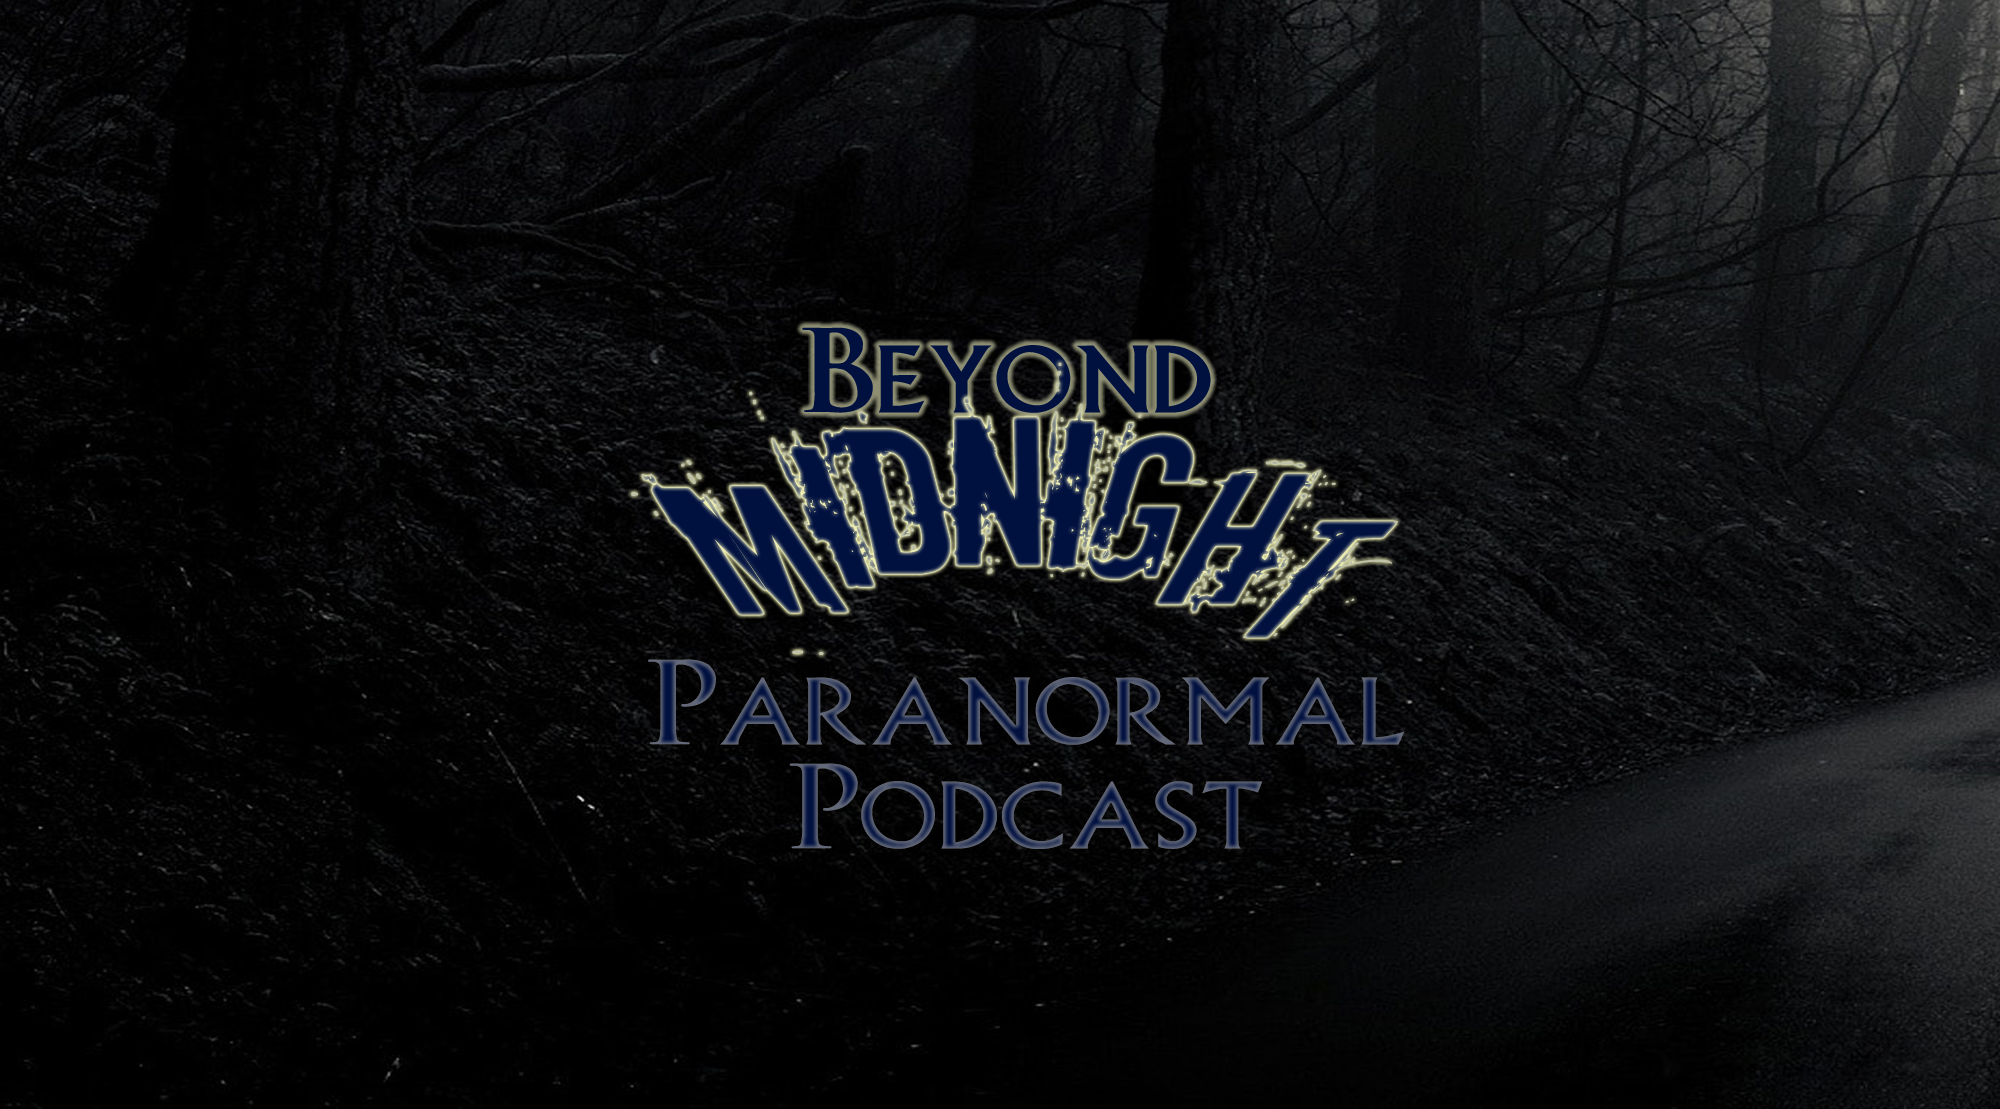 The Beyond Midnight Paranormal Podcast